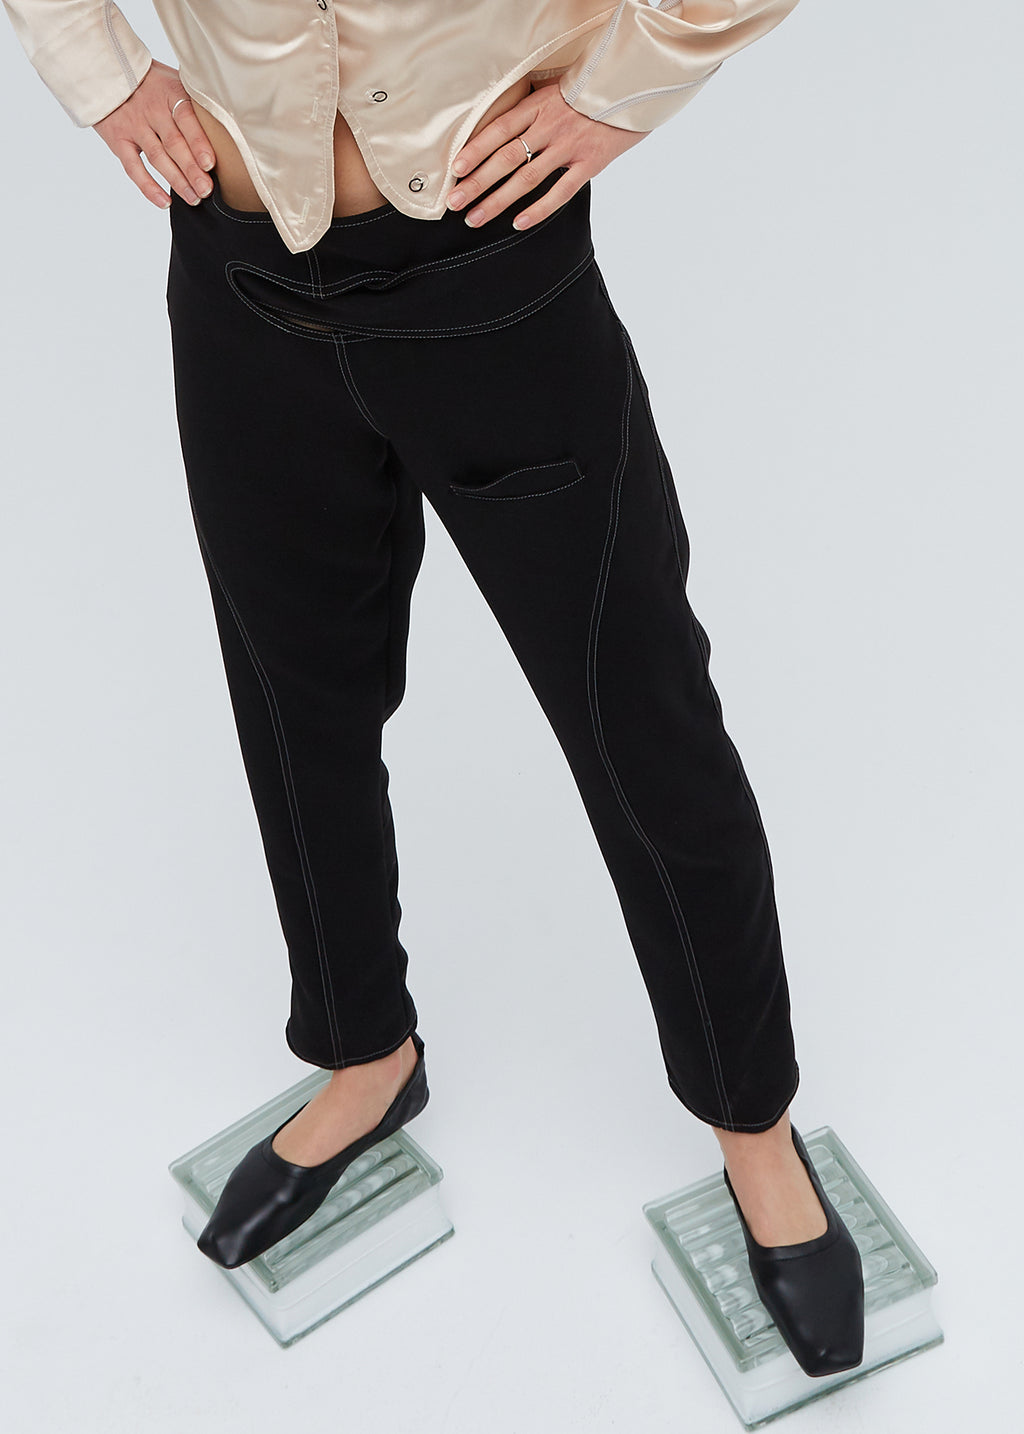 SOLIA trousers